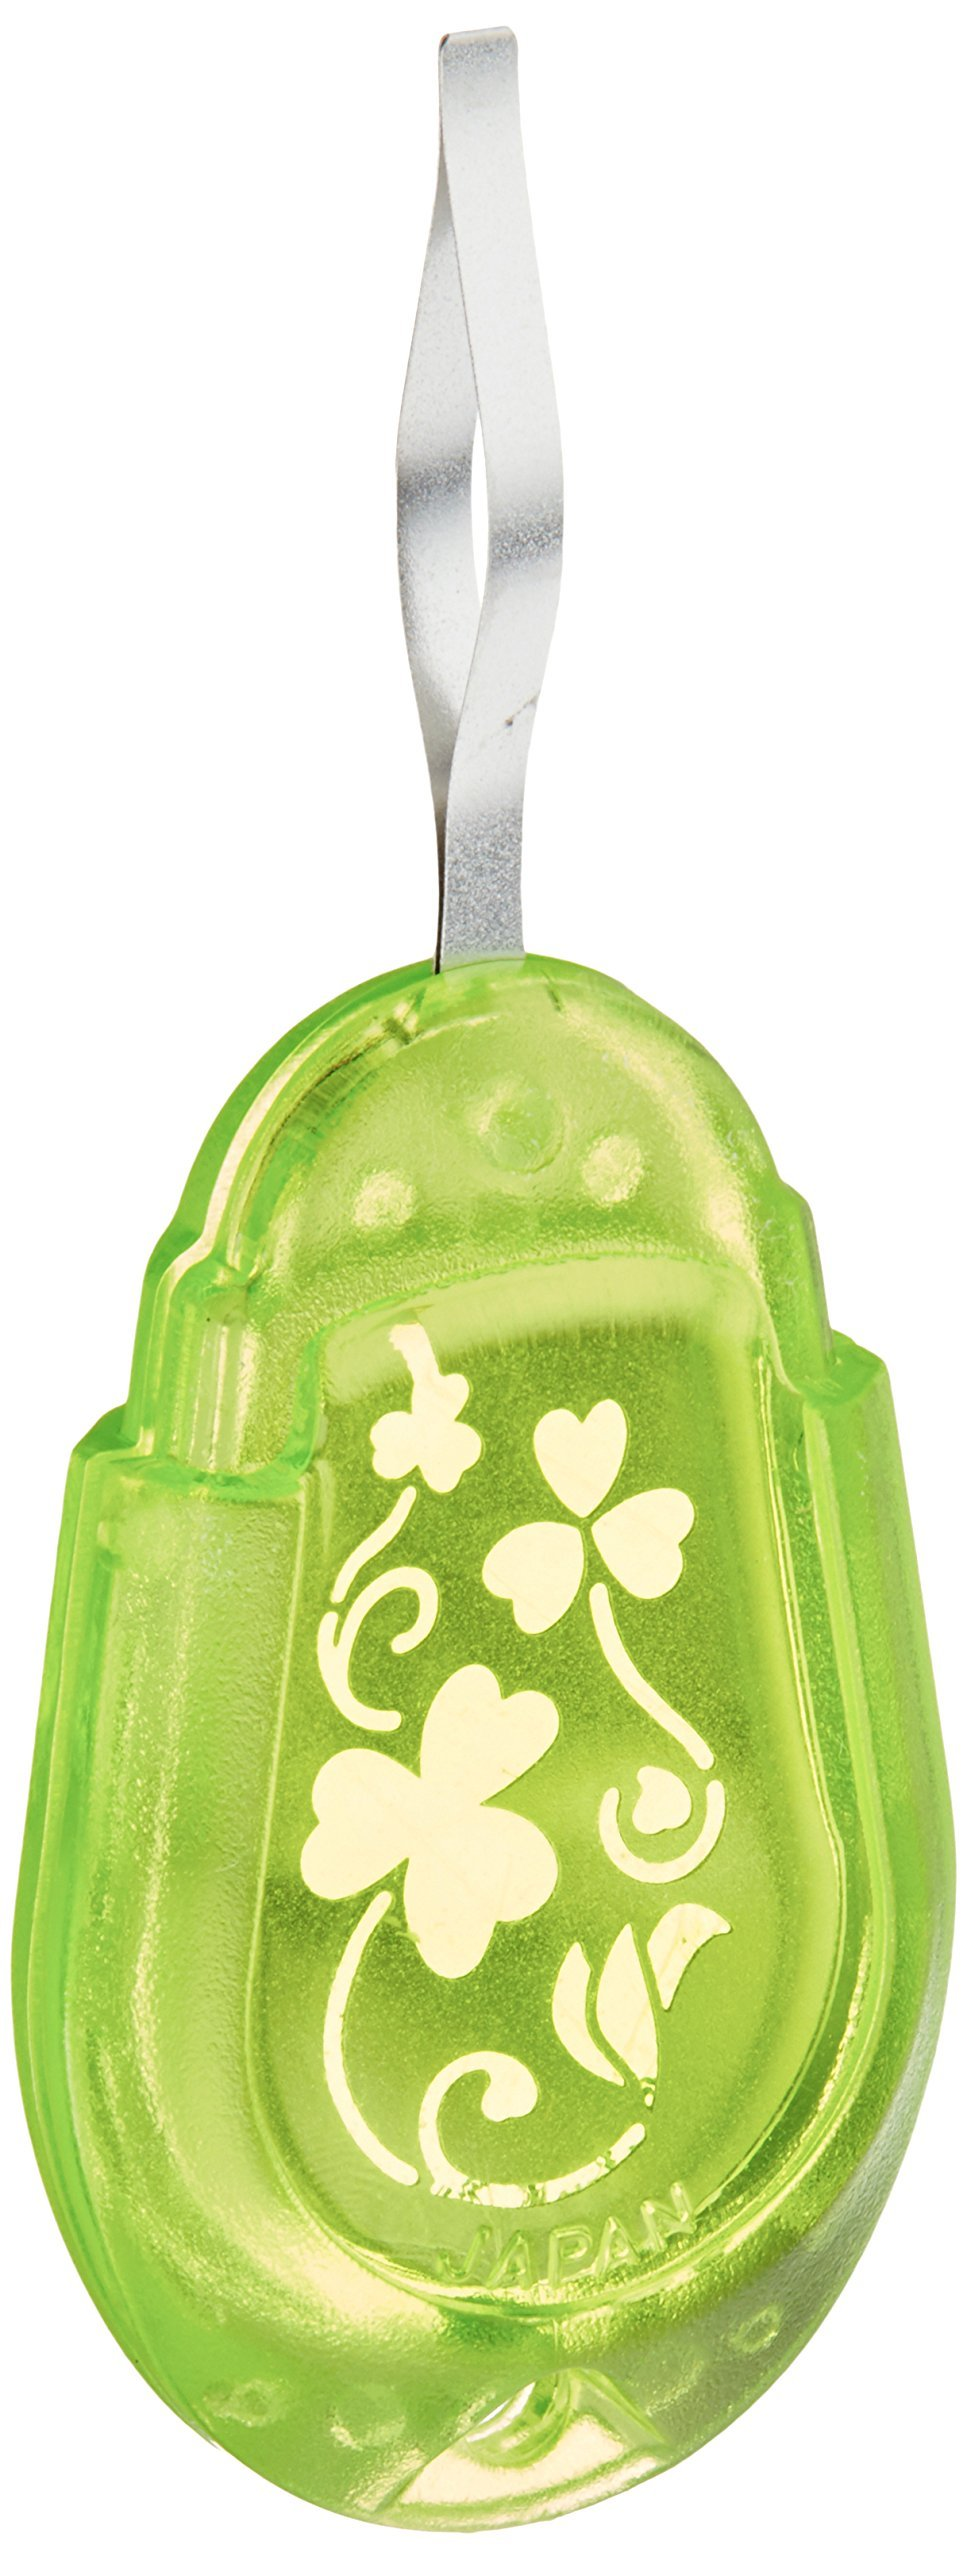 Clover 8611 Needle Threader For Embroidery Needles-Apple Green product image